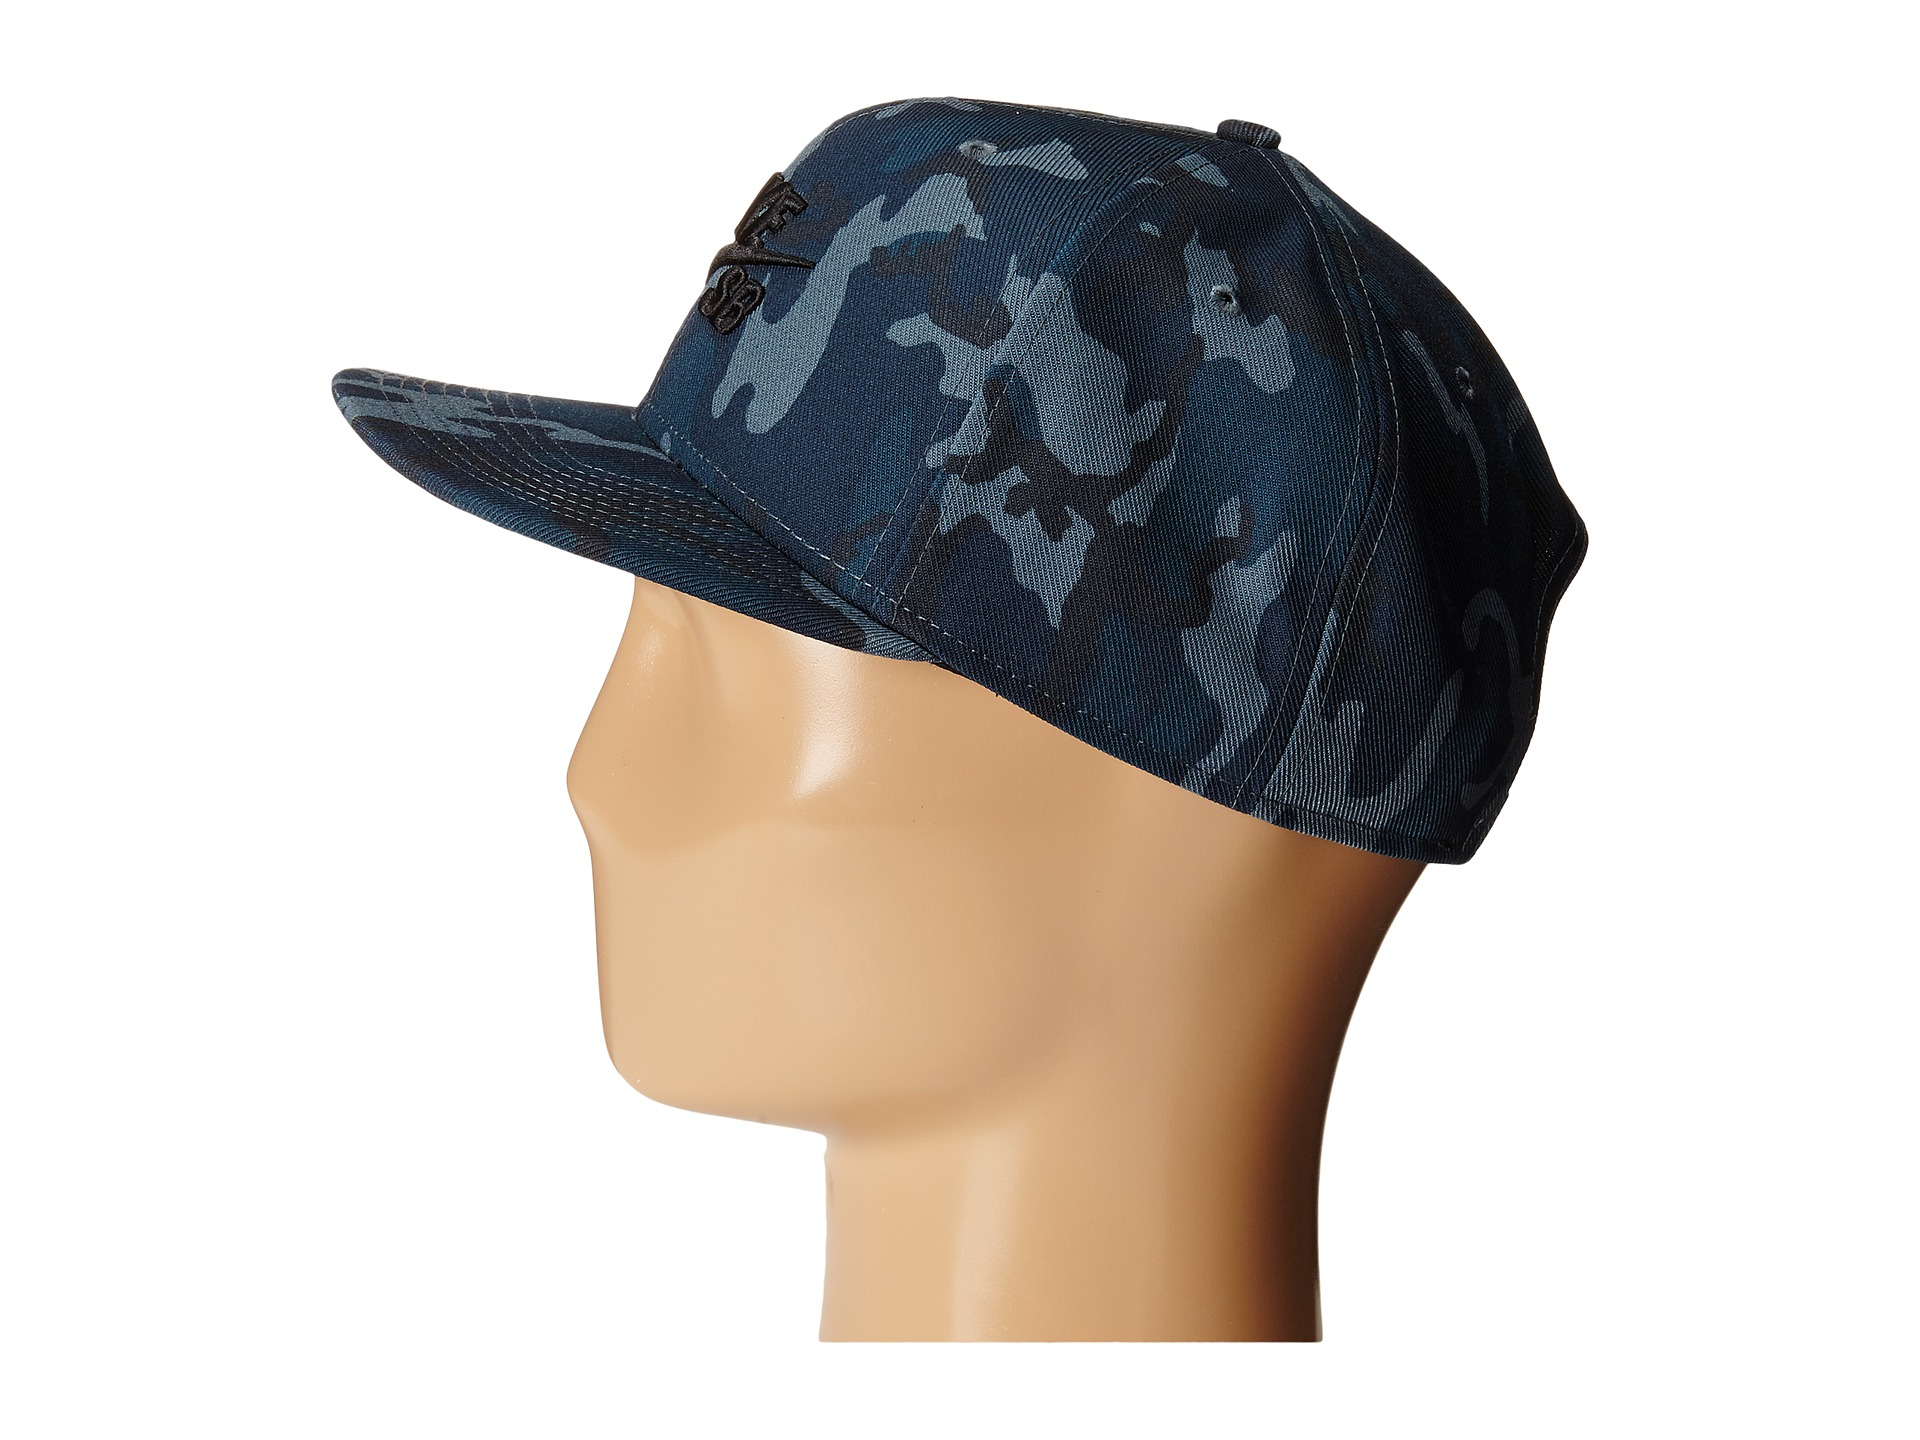 93d210a8bd4 reduced nike sb snapback cap sb camouflage e272e 4ec1a  official lyst nike  performance camo trucker hat in blue for men 73c62 129f7